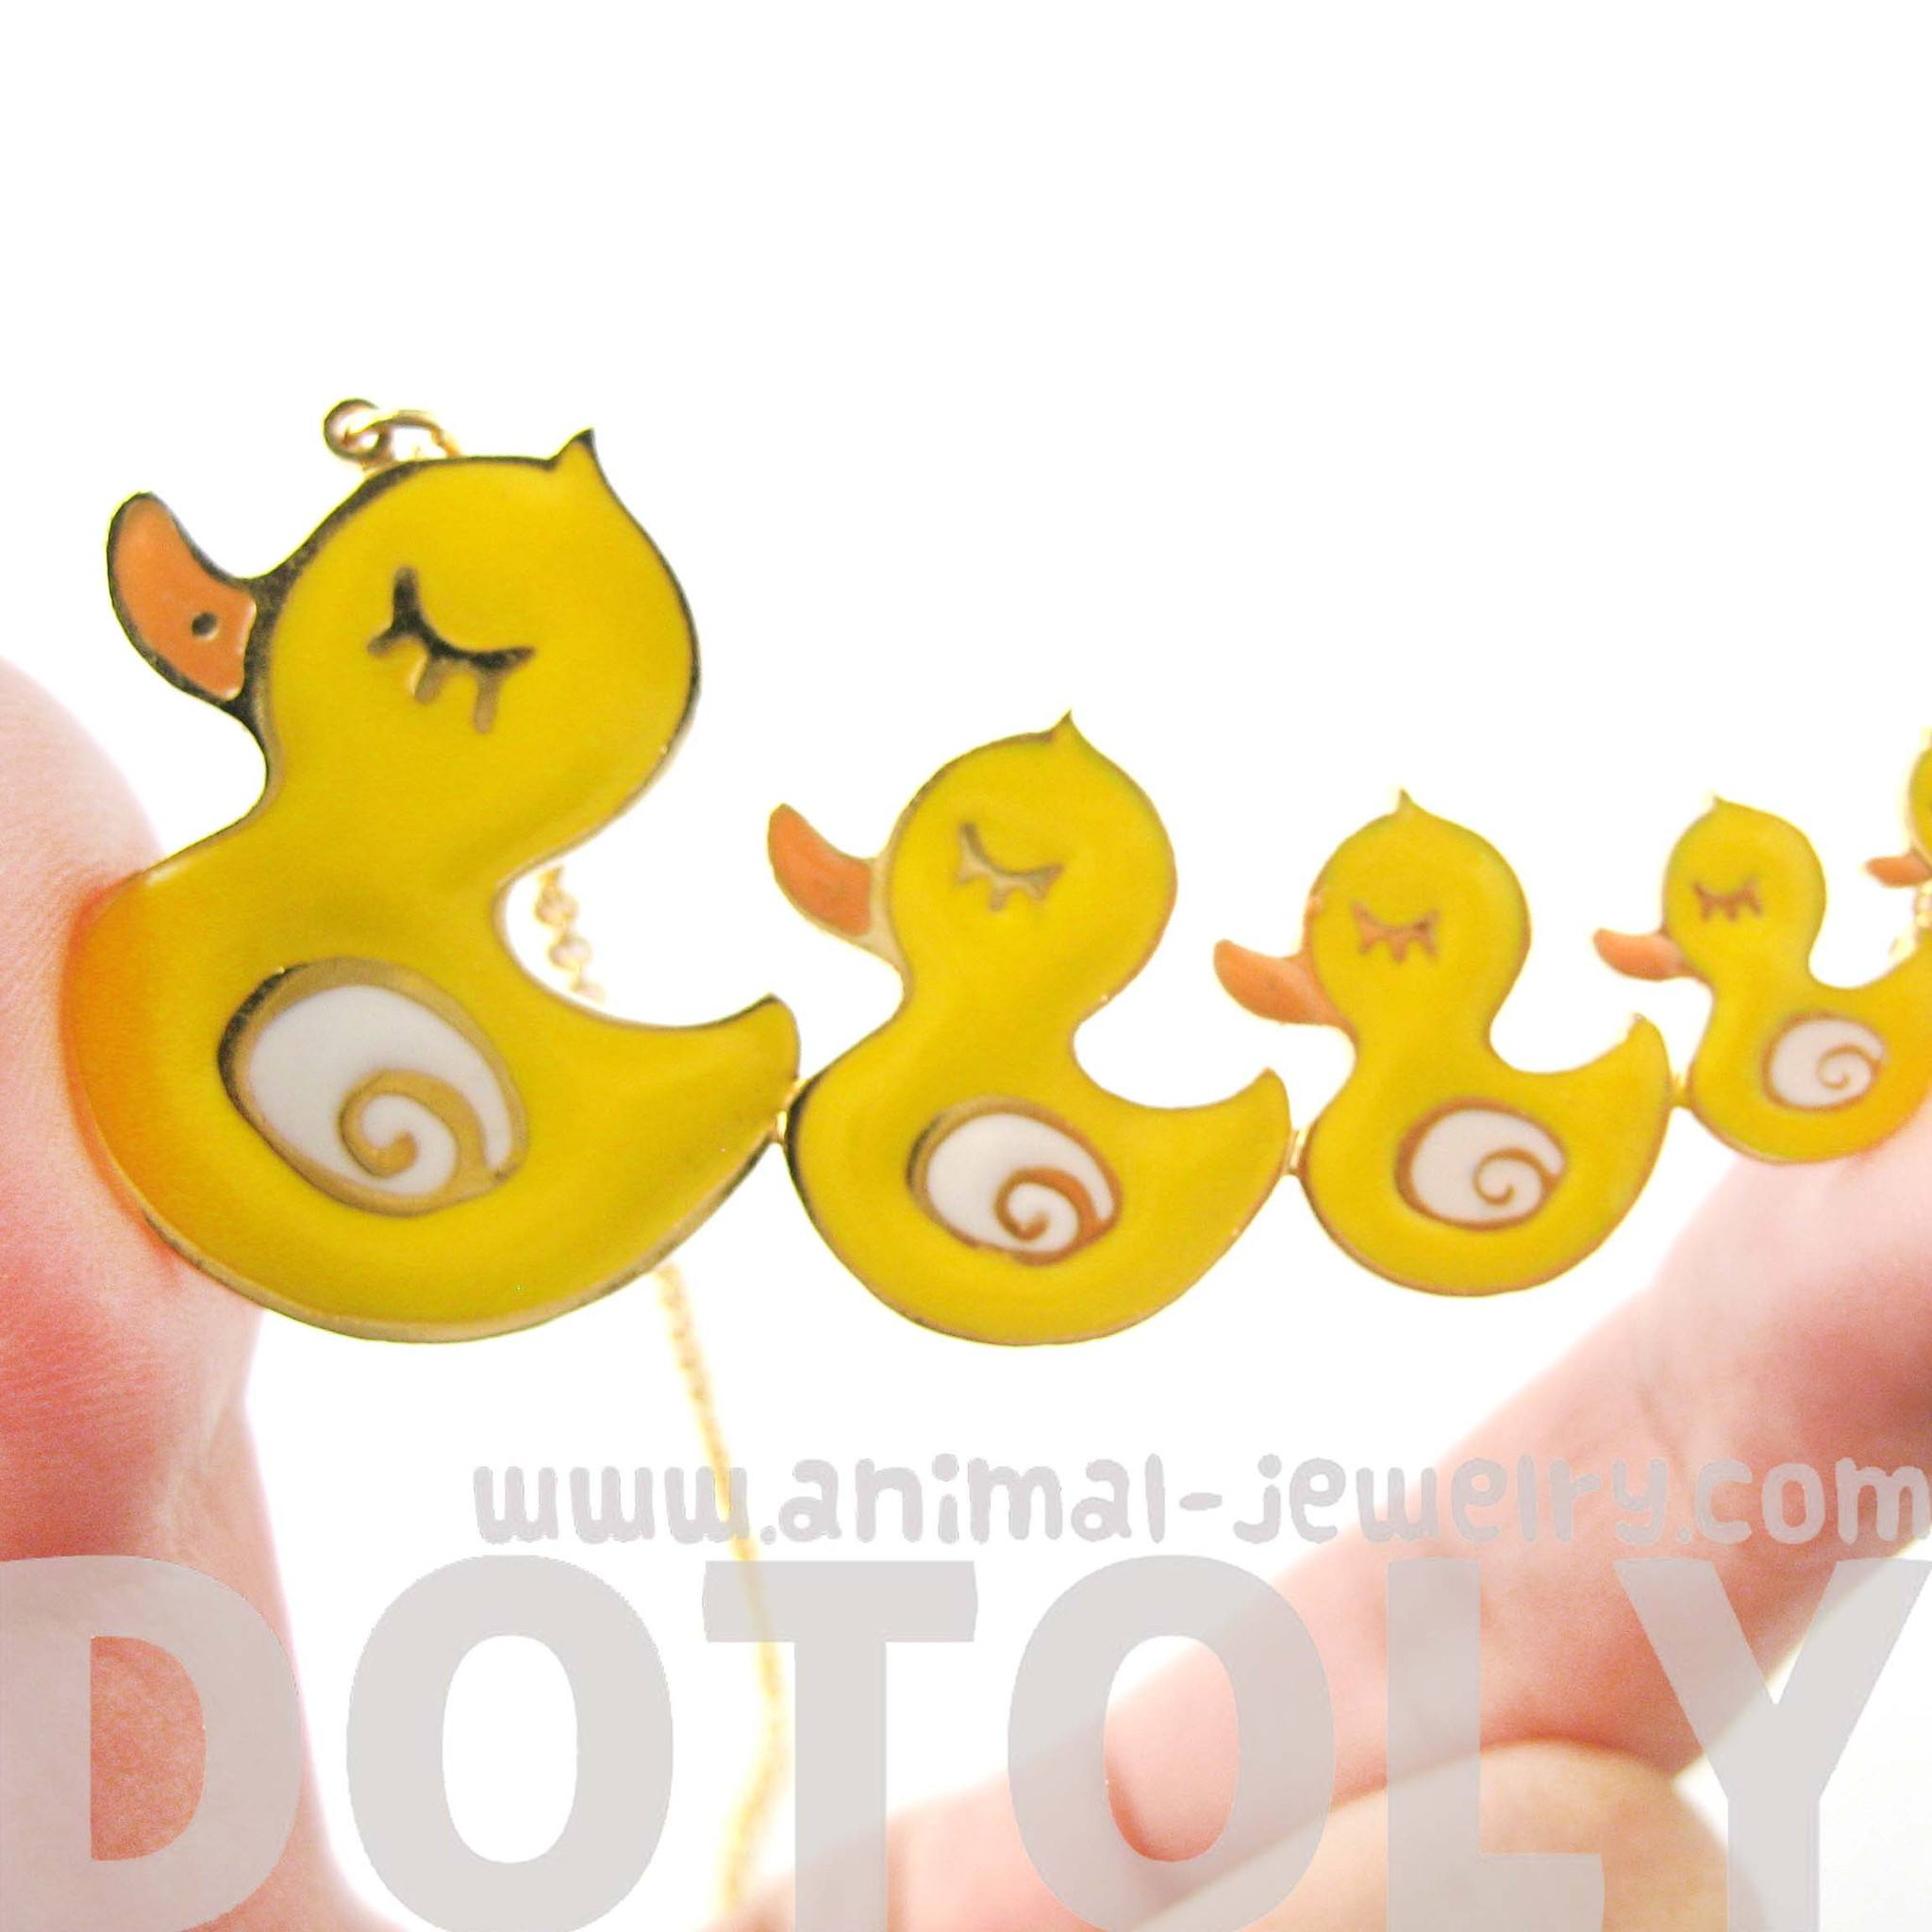 handmade-yellow-rubber-ducky-family-shaped-animal-pendant-necklace-limited-edition